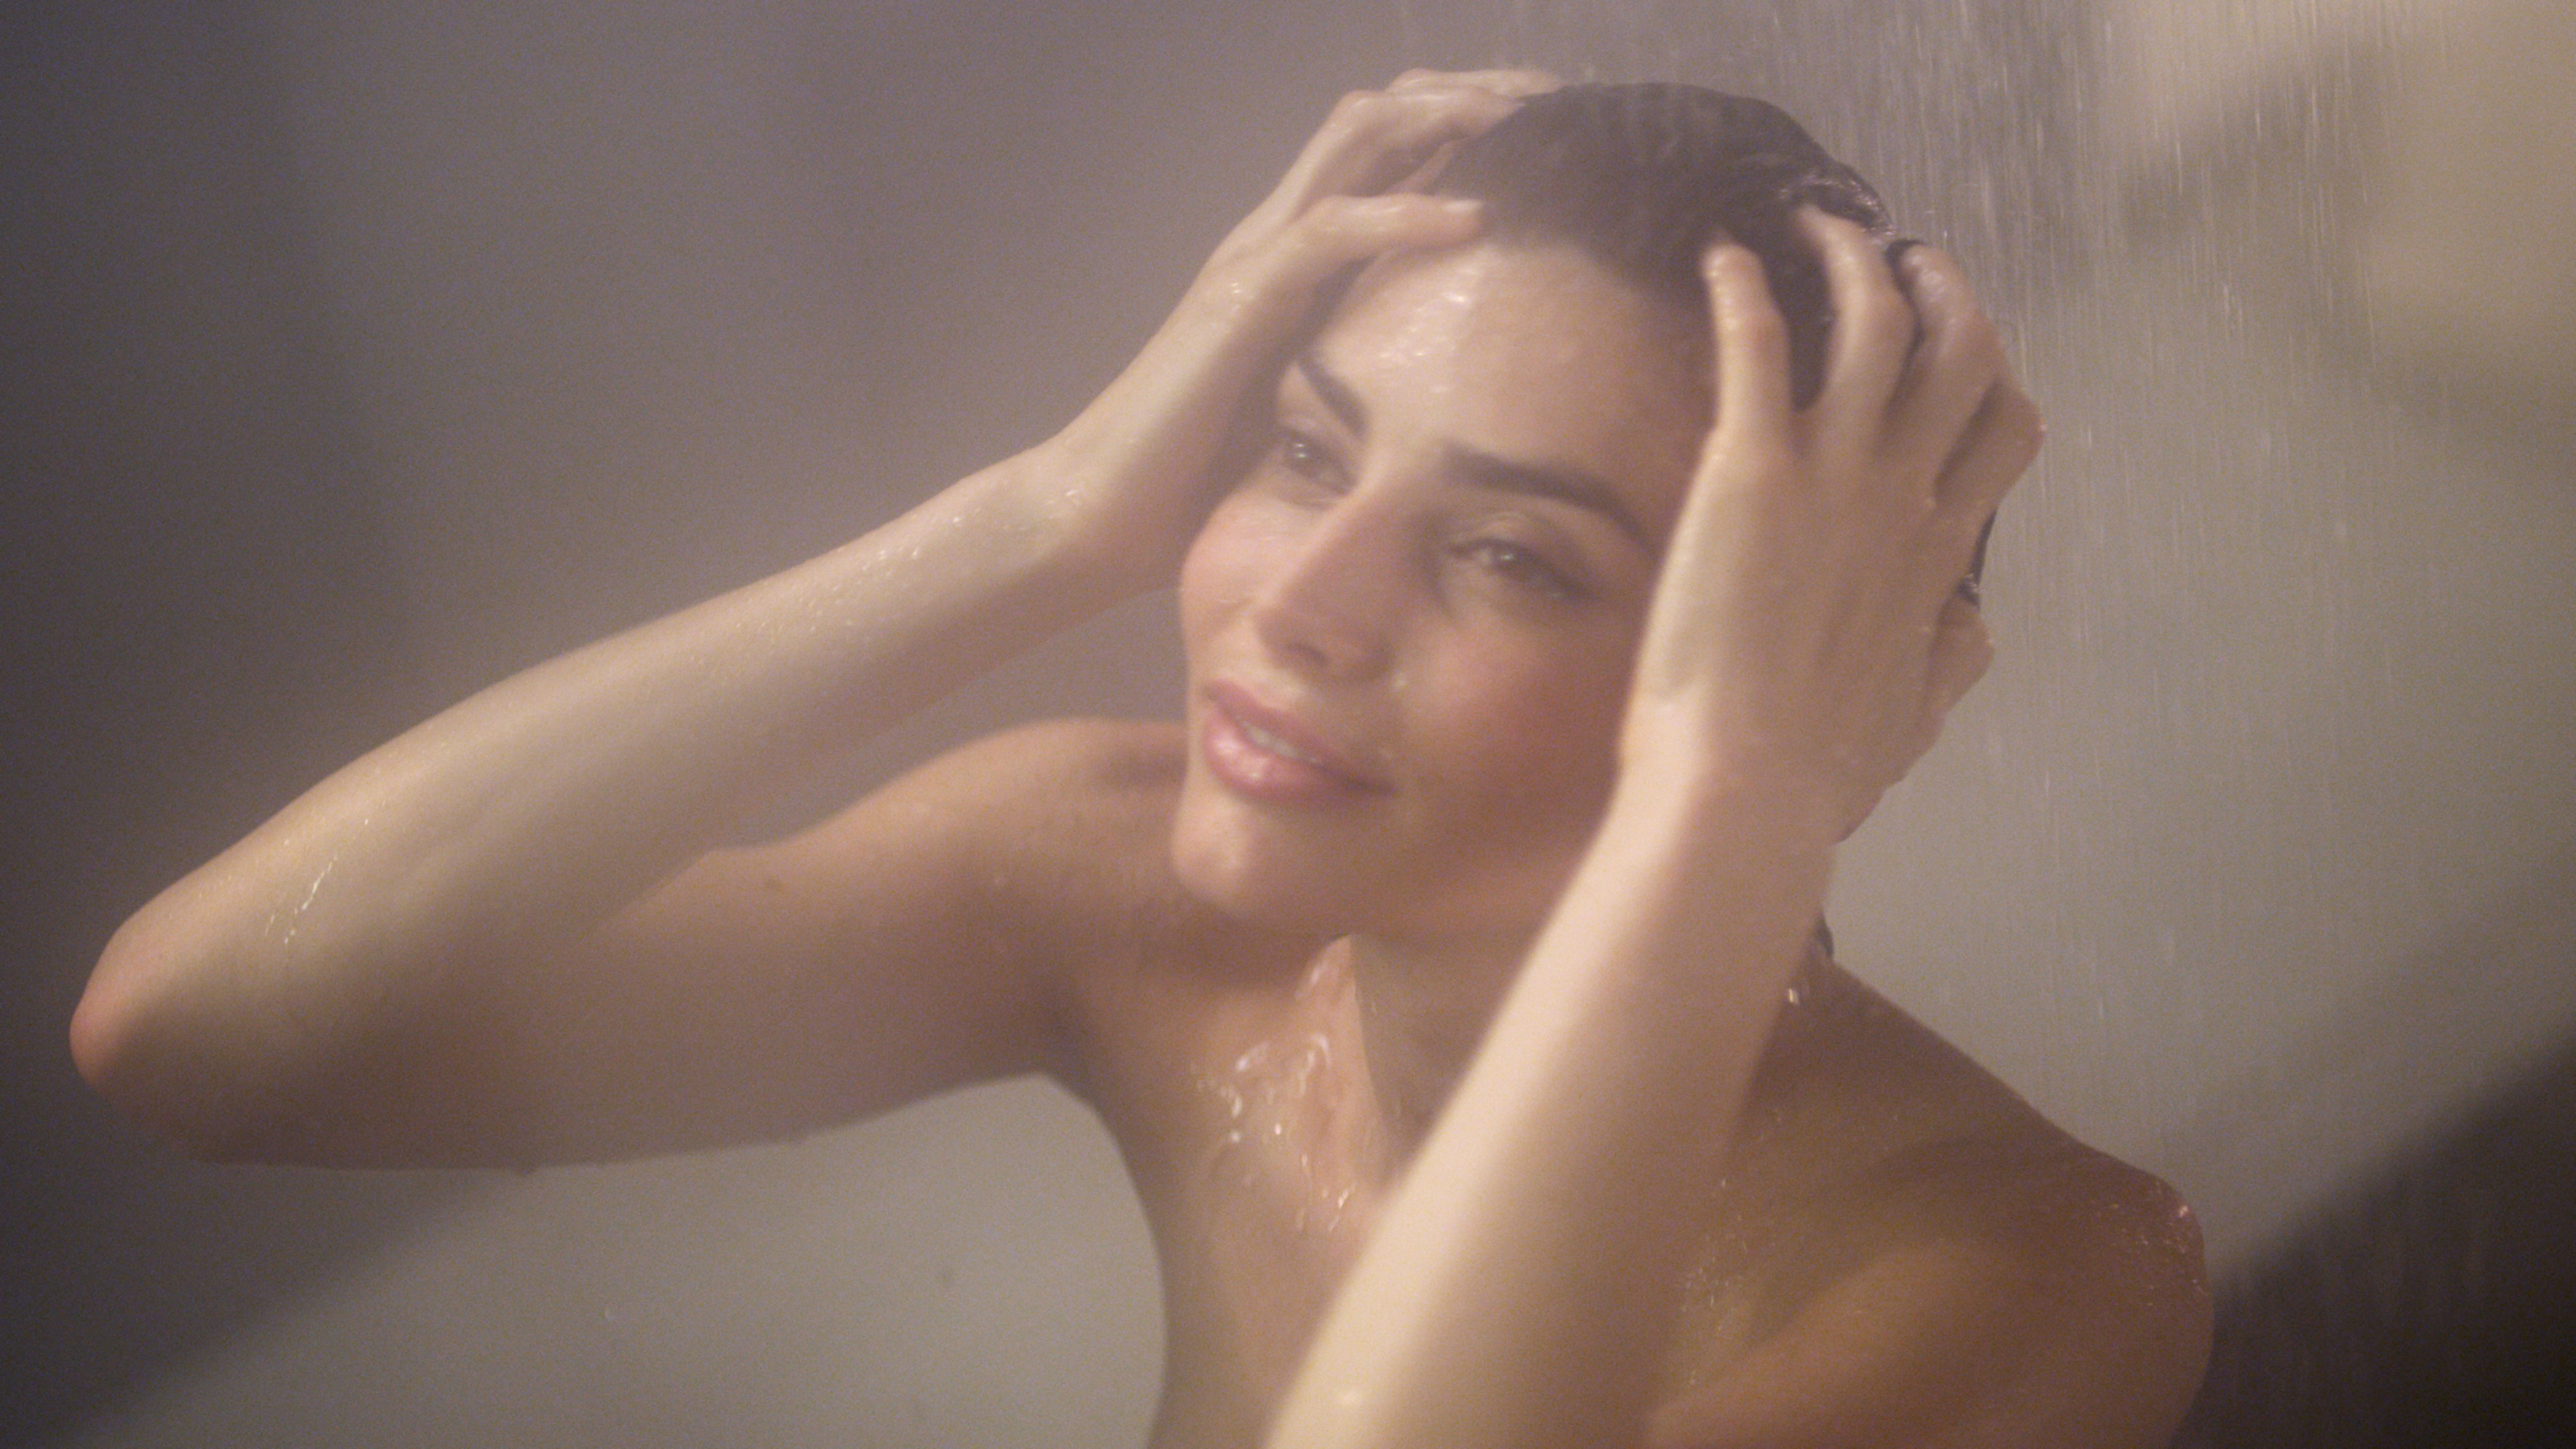 Master The Cooldown - 7 Things To Do After A Steam Bath